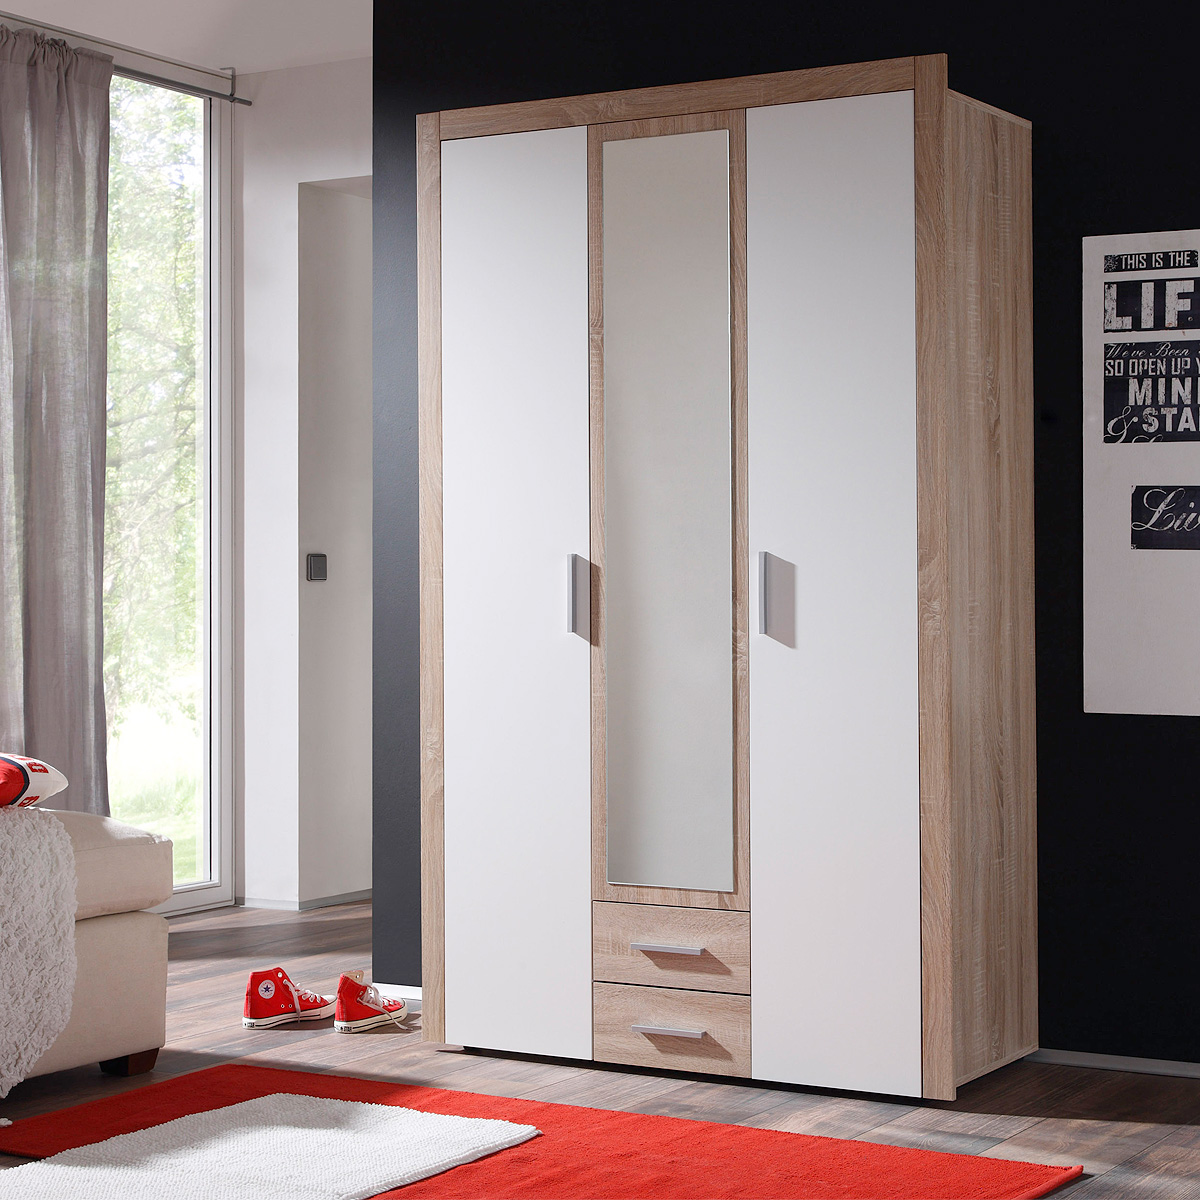 kleiderschrank axel schrank dreht renschrank sonoma eiche wei 121 cm. Black Bedroom Furniture Sets. Home Design Ideas